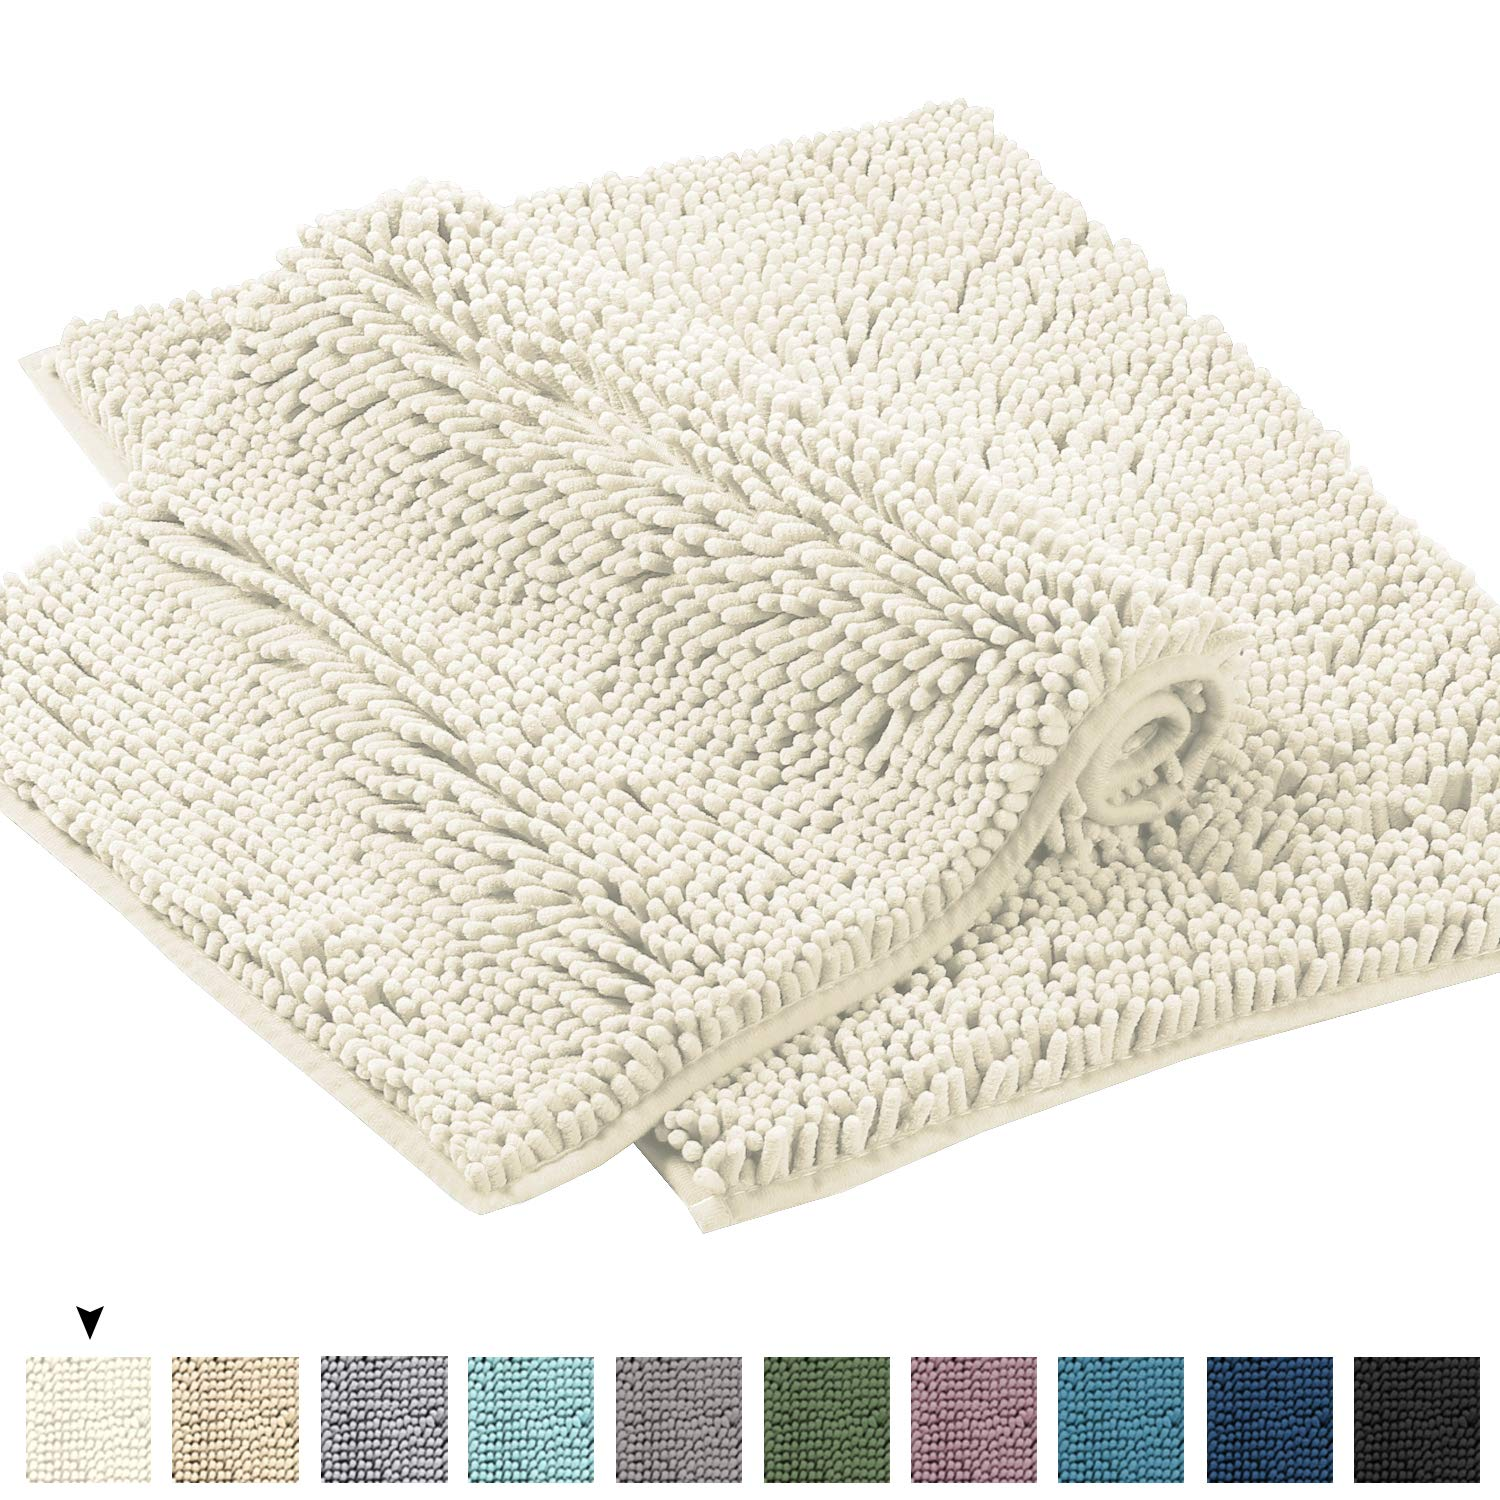 """Microfiber Bath Rugs Chenille Floor Mat Ultra Soft Washable Bathroom Dry Fast Water Absorbent Bedroom Area Rugs Kitchen Rugs Non Skid Dry Fast Machine Washable, Cream 17"""" x 24""""/17"""" x 24"""""""